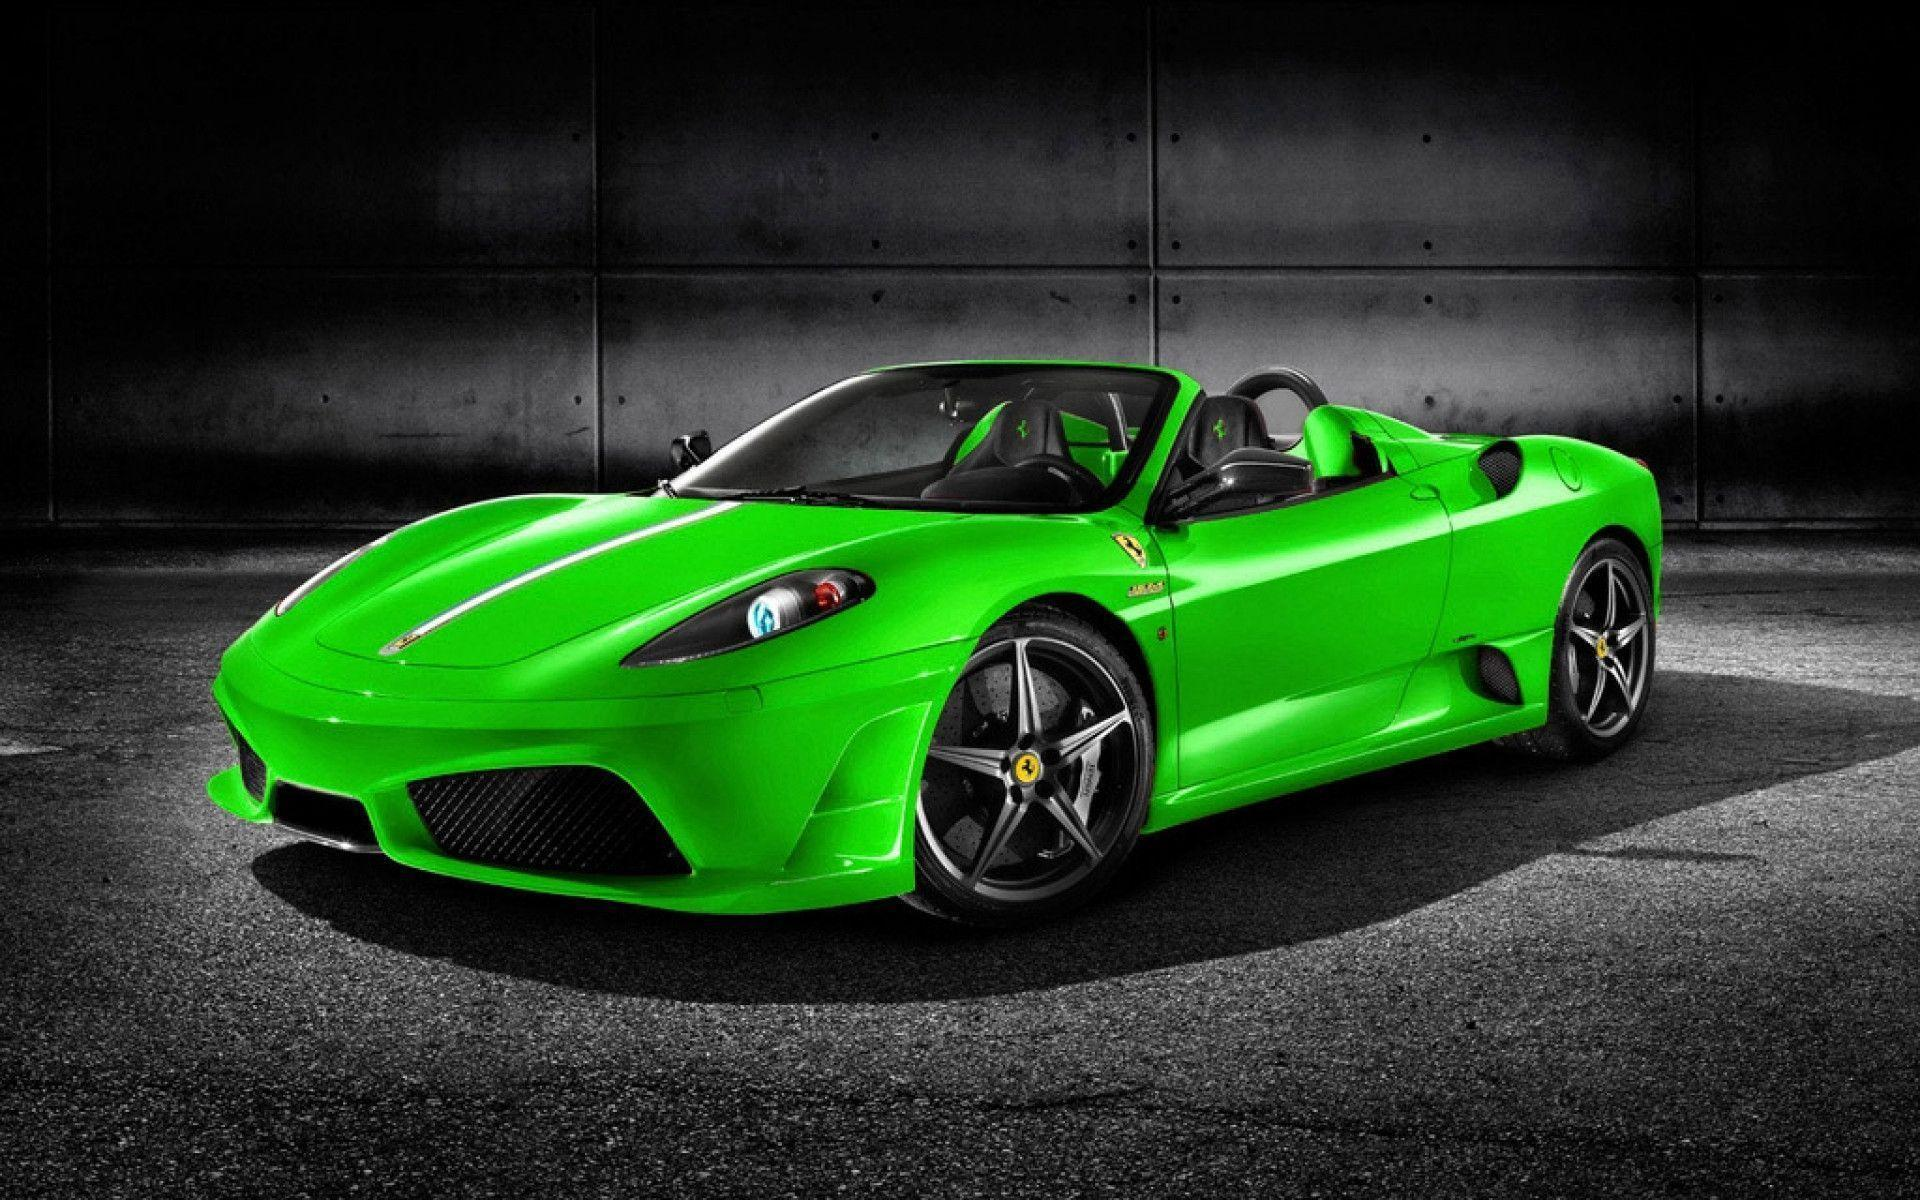 wallpaper green ferrari cars - photo #13